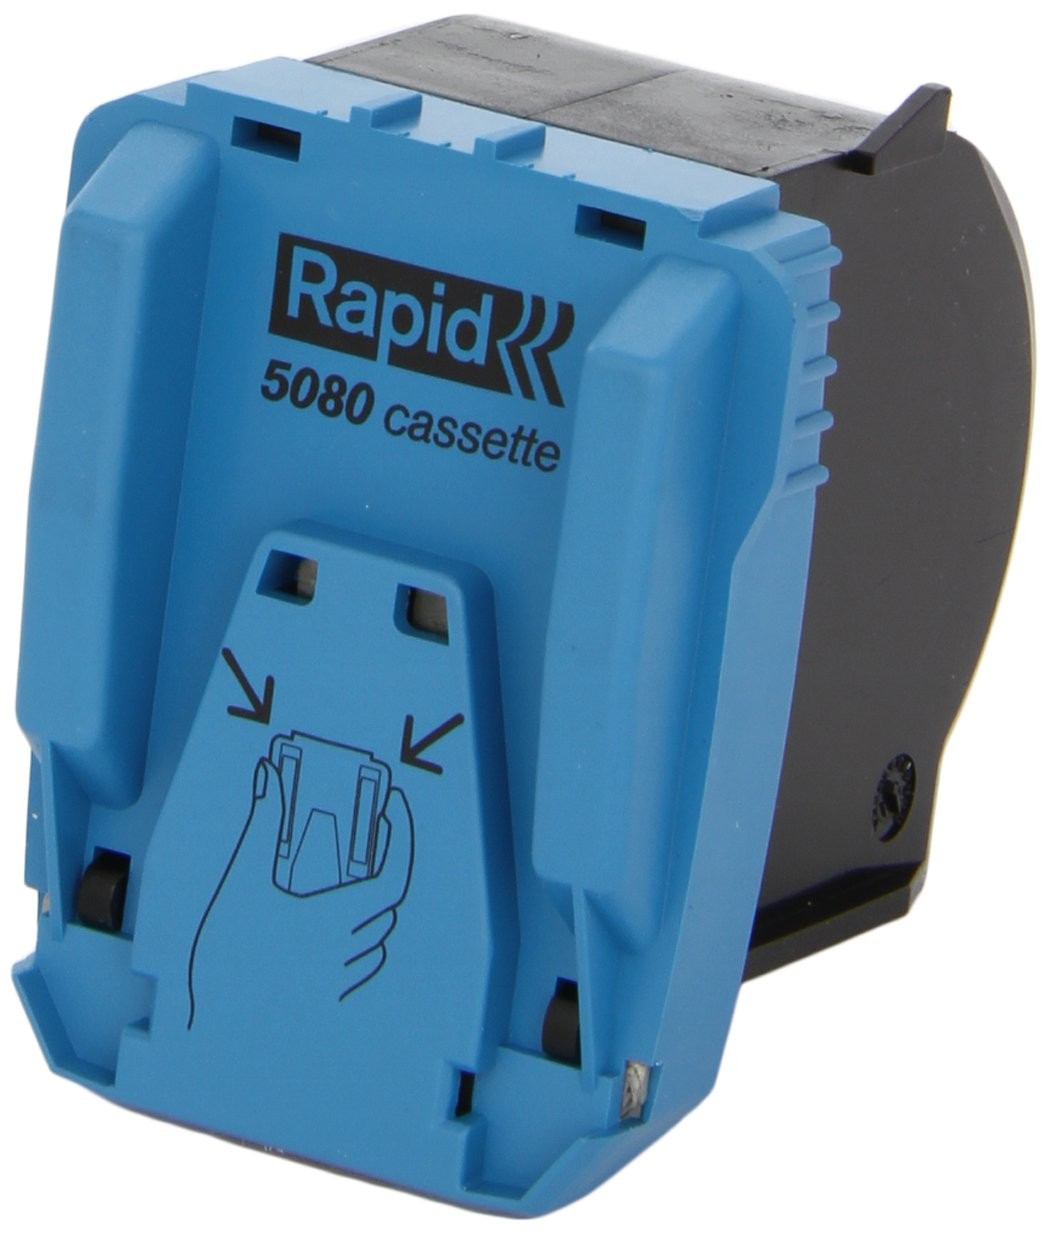 Rapid 5080 Staple Cassettes (5,000)